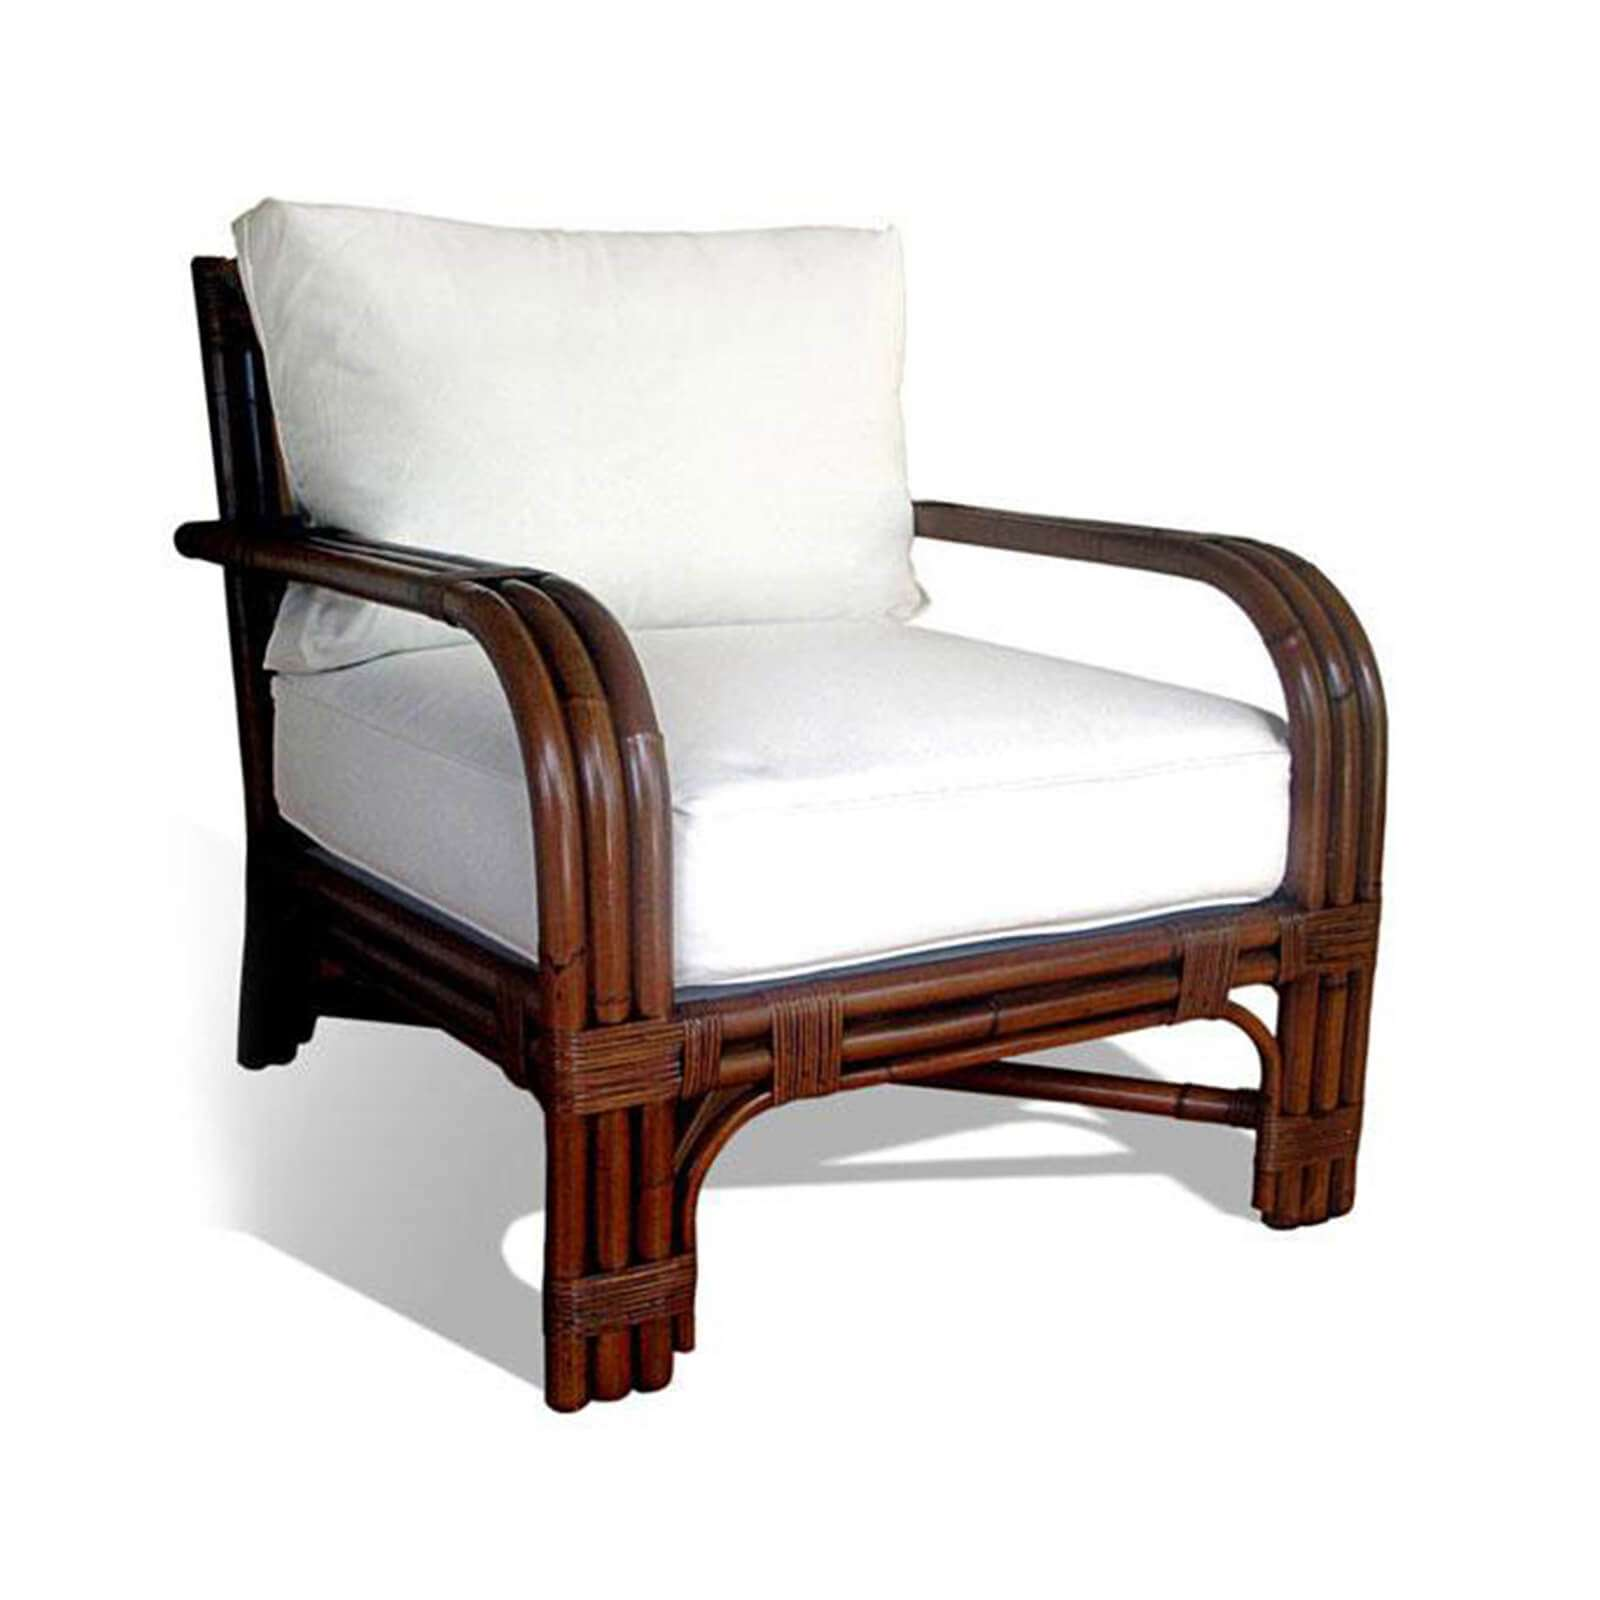 JAMAICA CLUB CHAIR 20 - STUART MEMBERY HOME COLLECTION